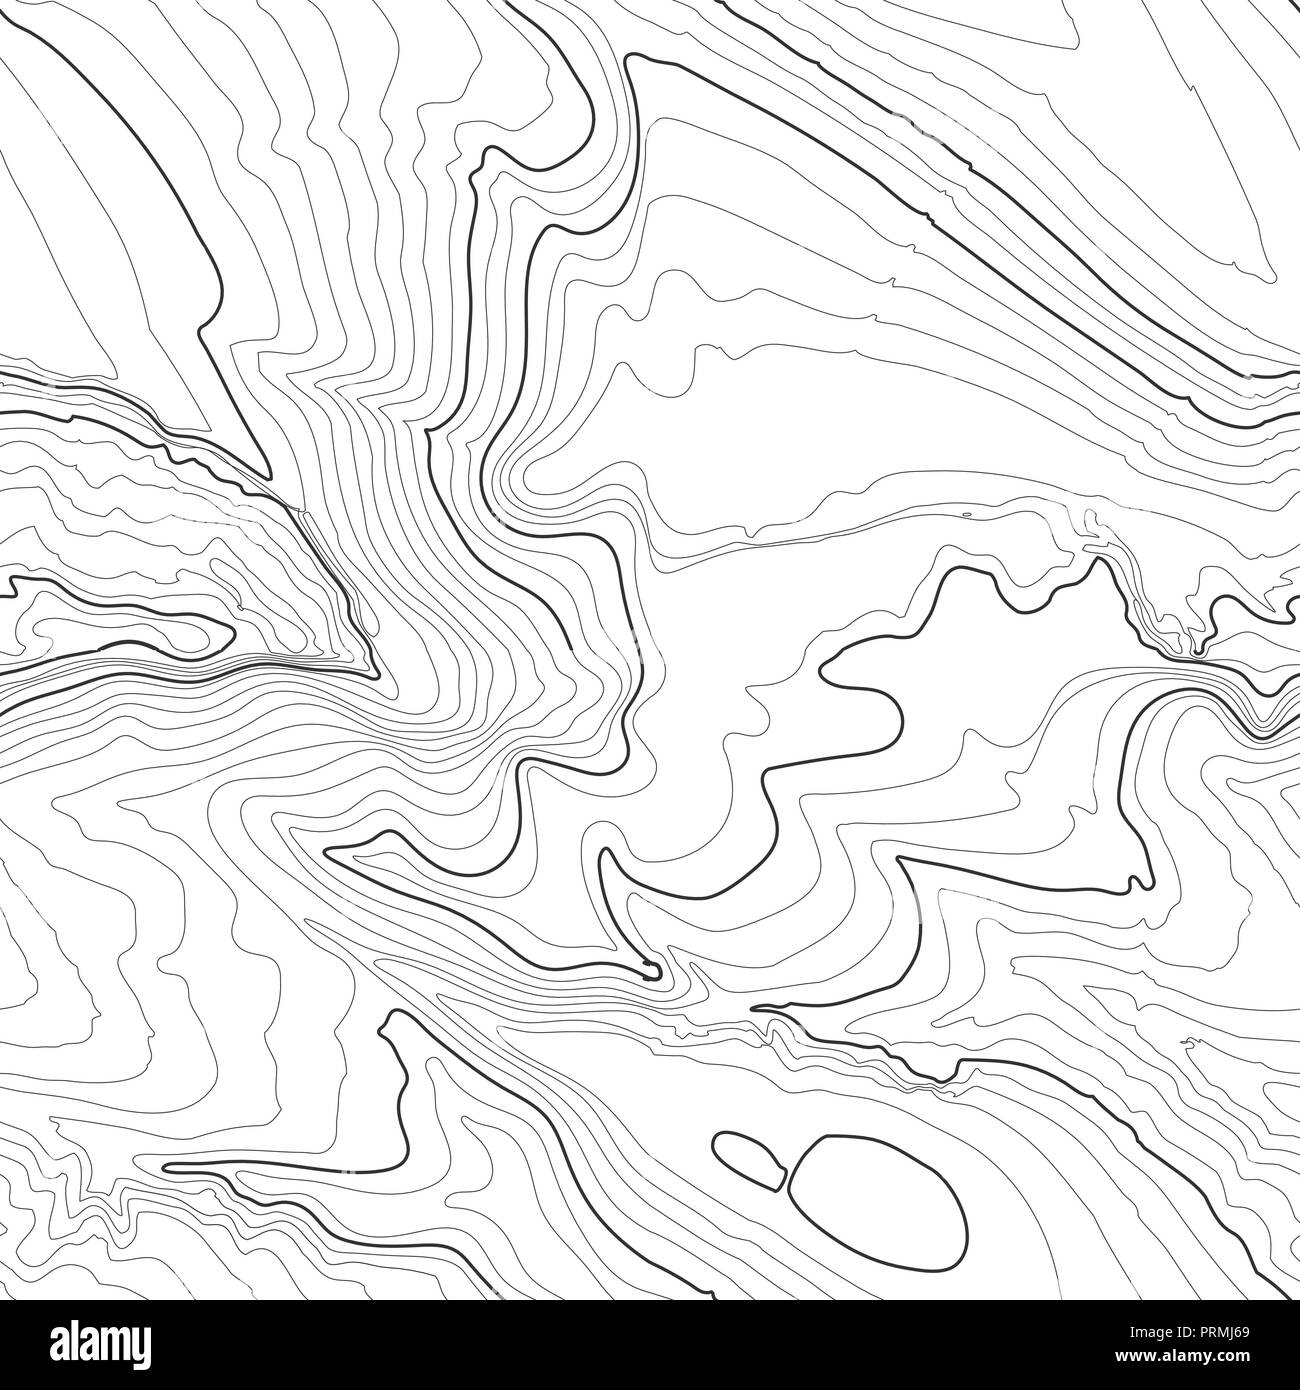 Contour Lines Map High Resolution Stock Photography And